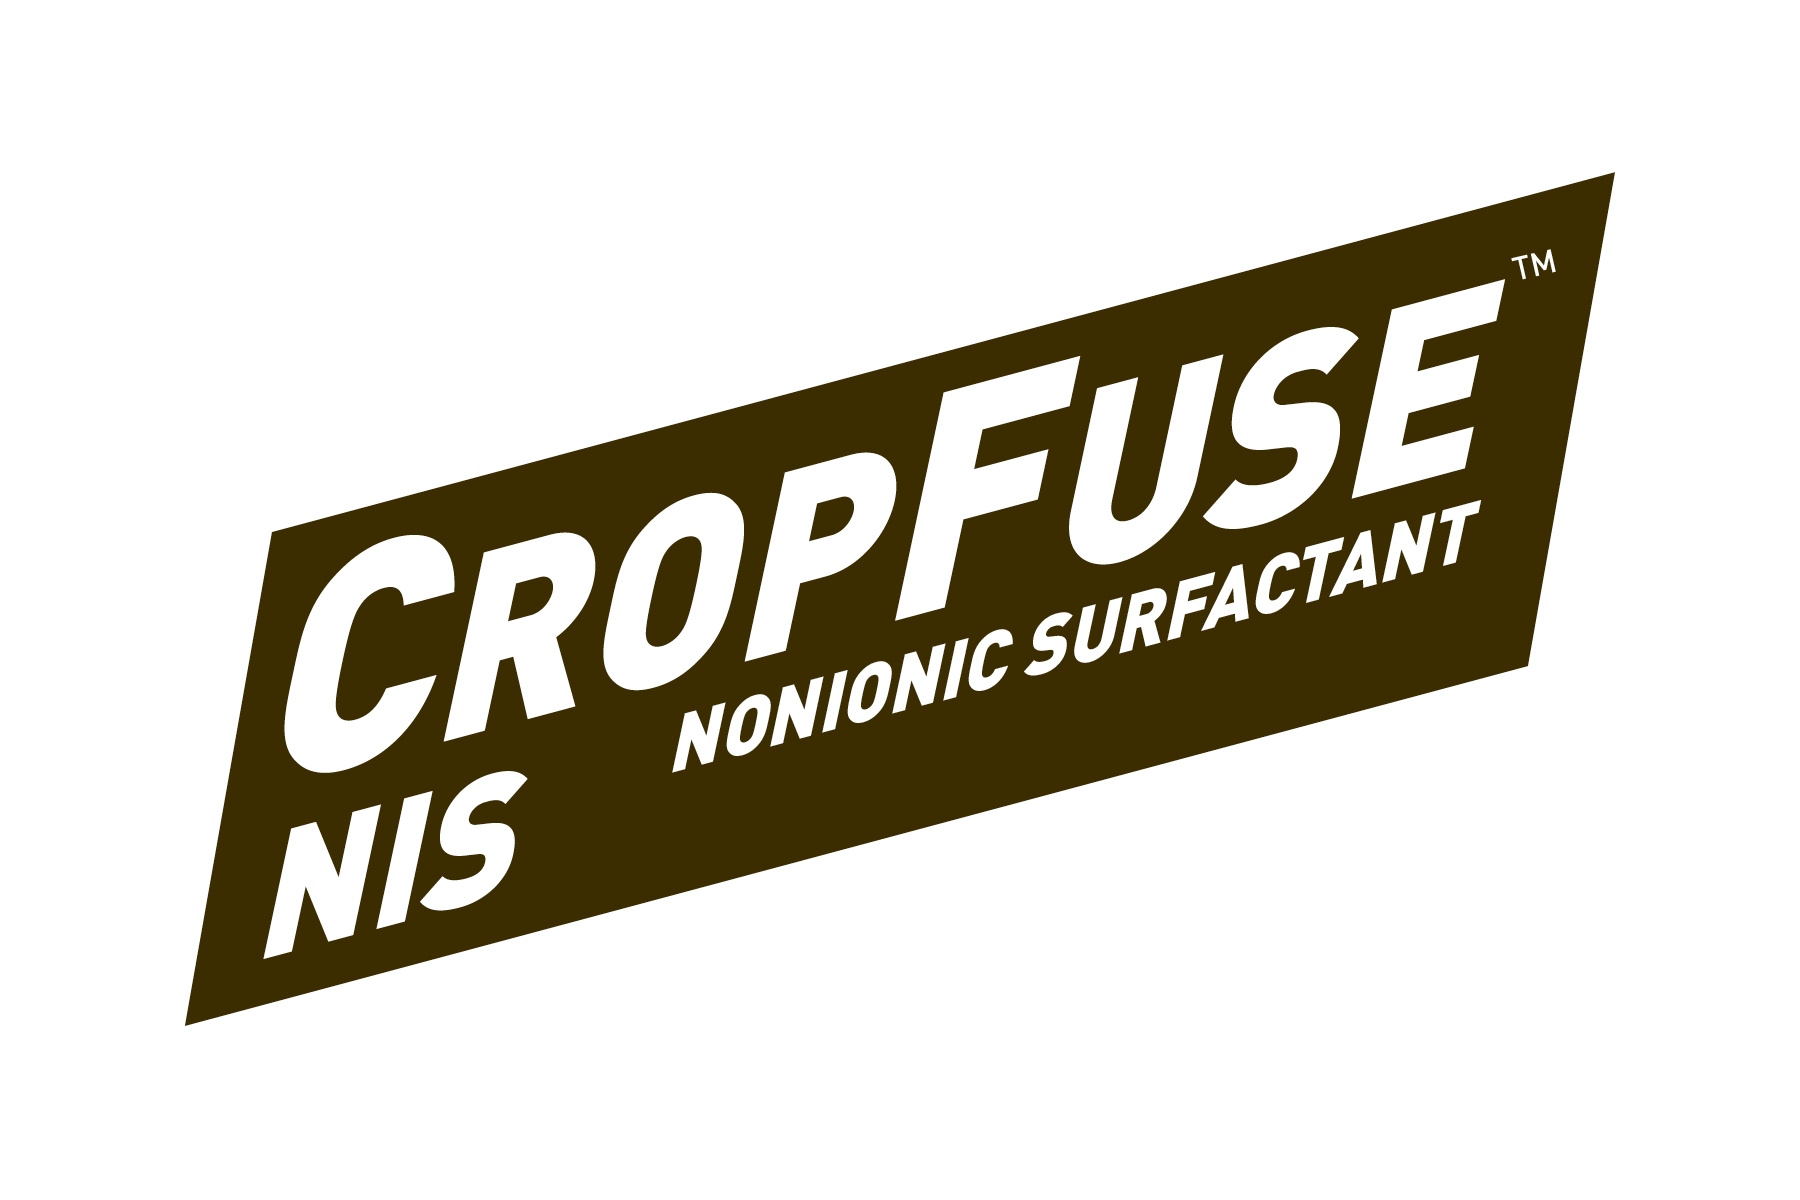 CropFuse™ NIS Nonionic Surfactant